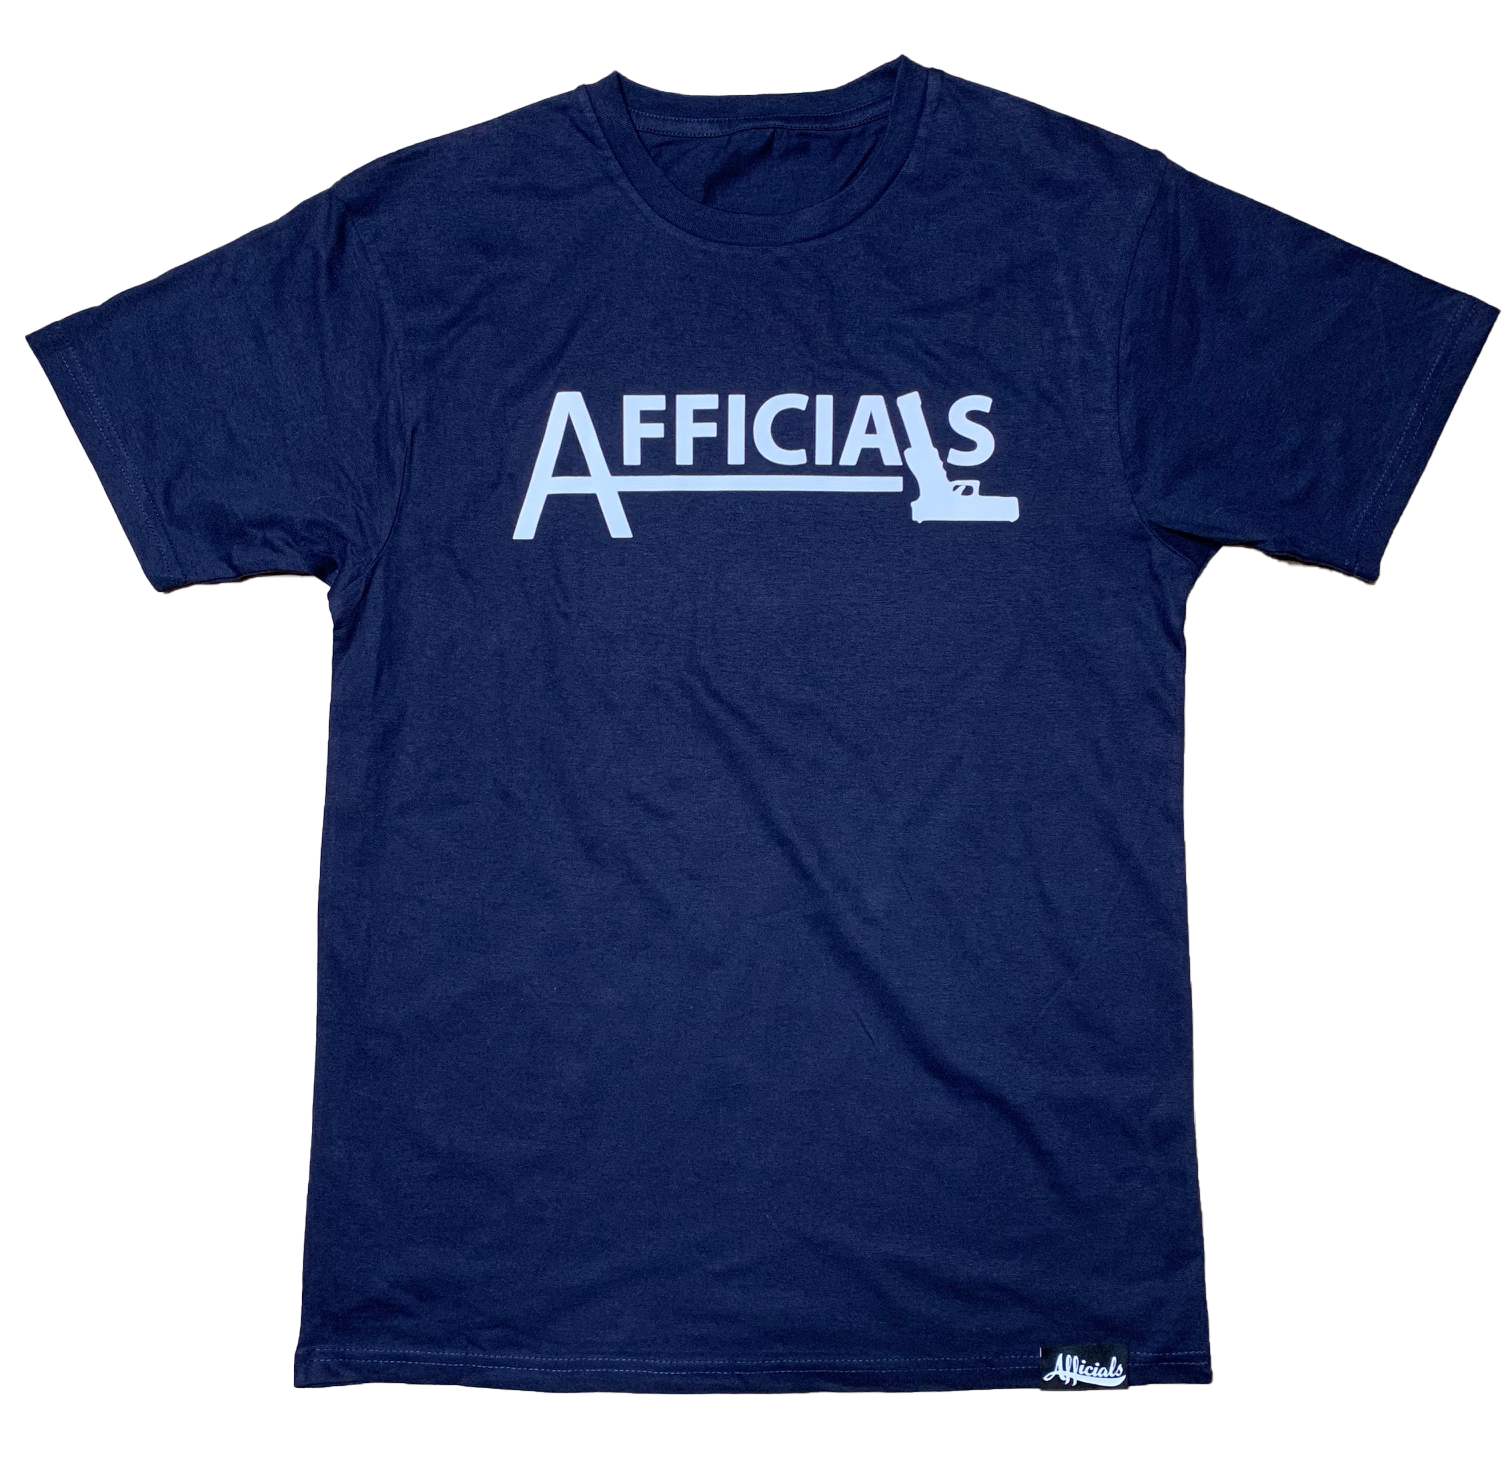 "Afficials ""40"" Tee NAVY/WHITE"